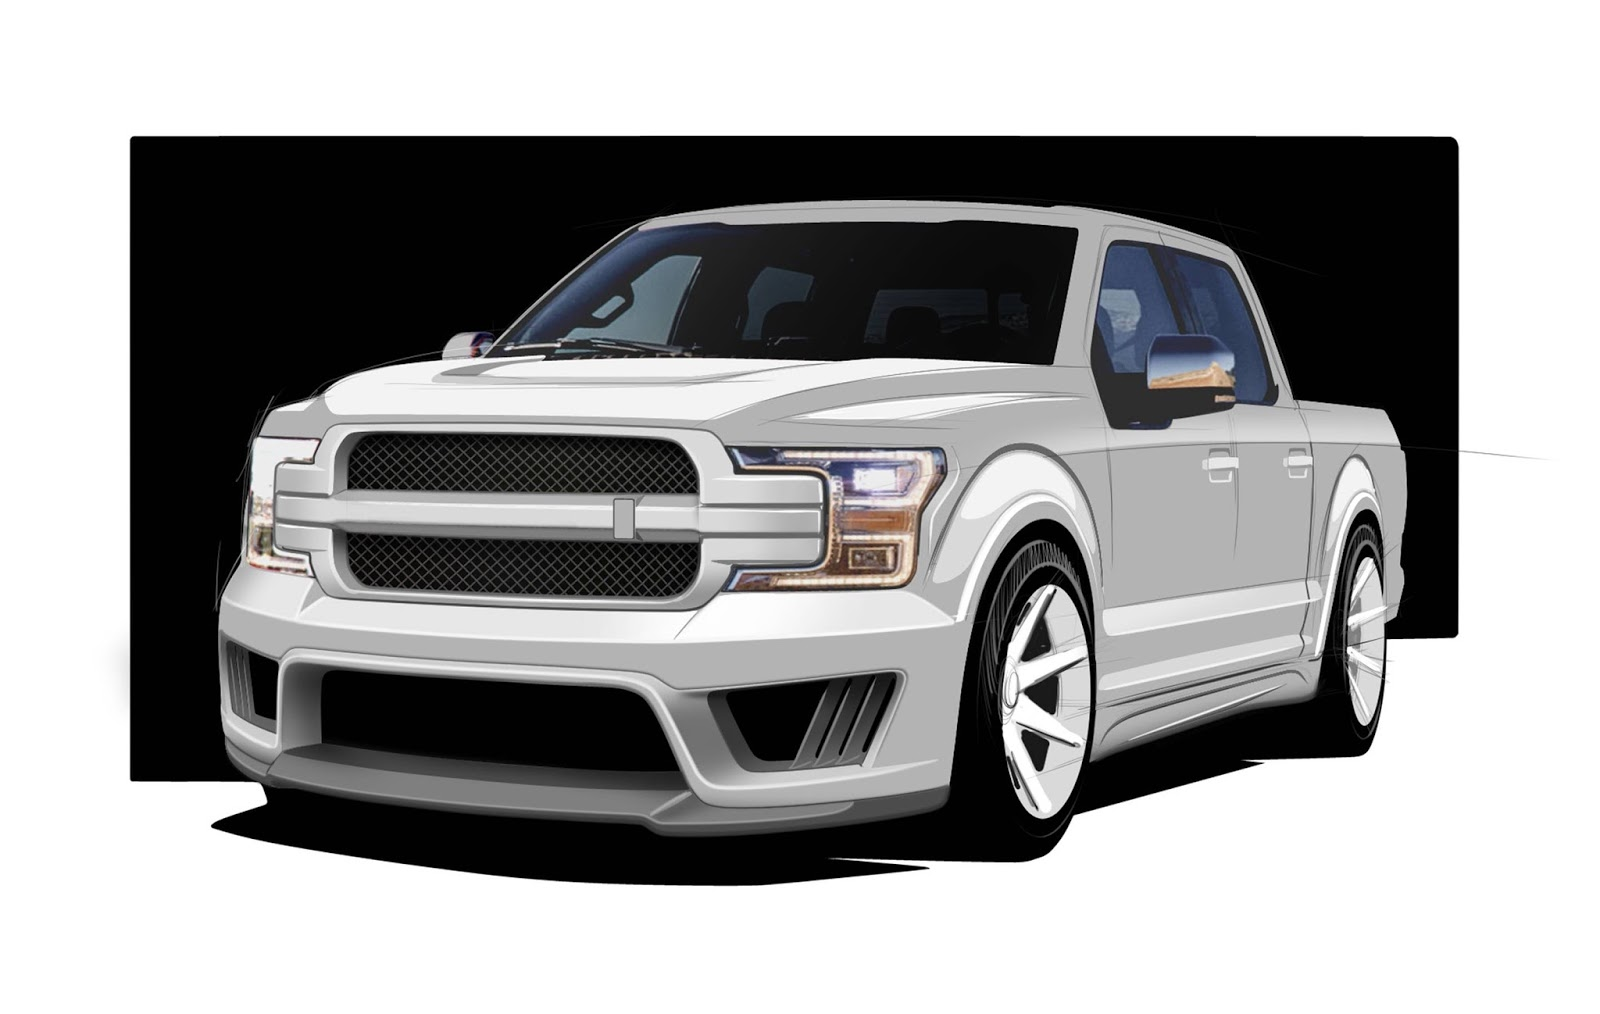 Saleen automotive highly respected for innovative high performance vehicles of all kinds returns to the truck market with the announcement of their new